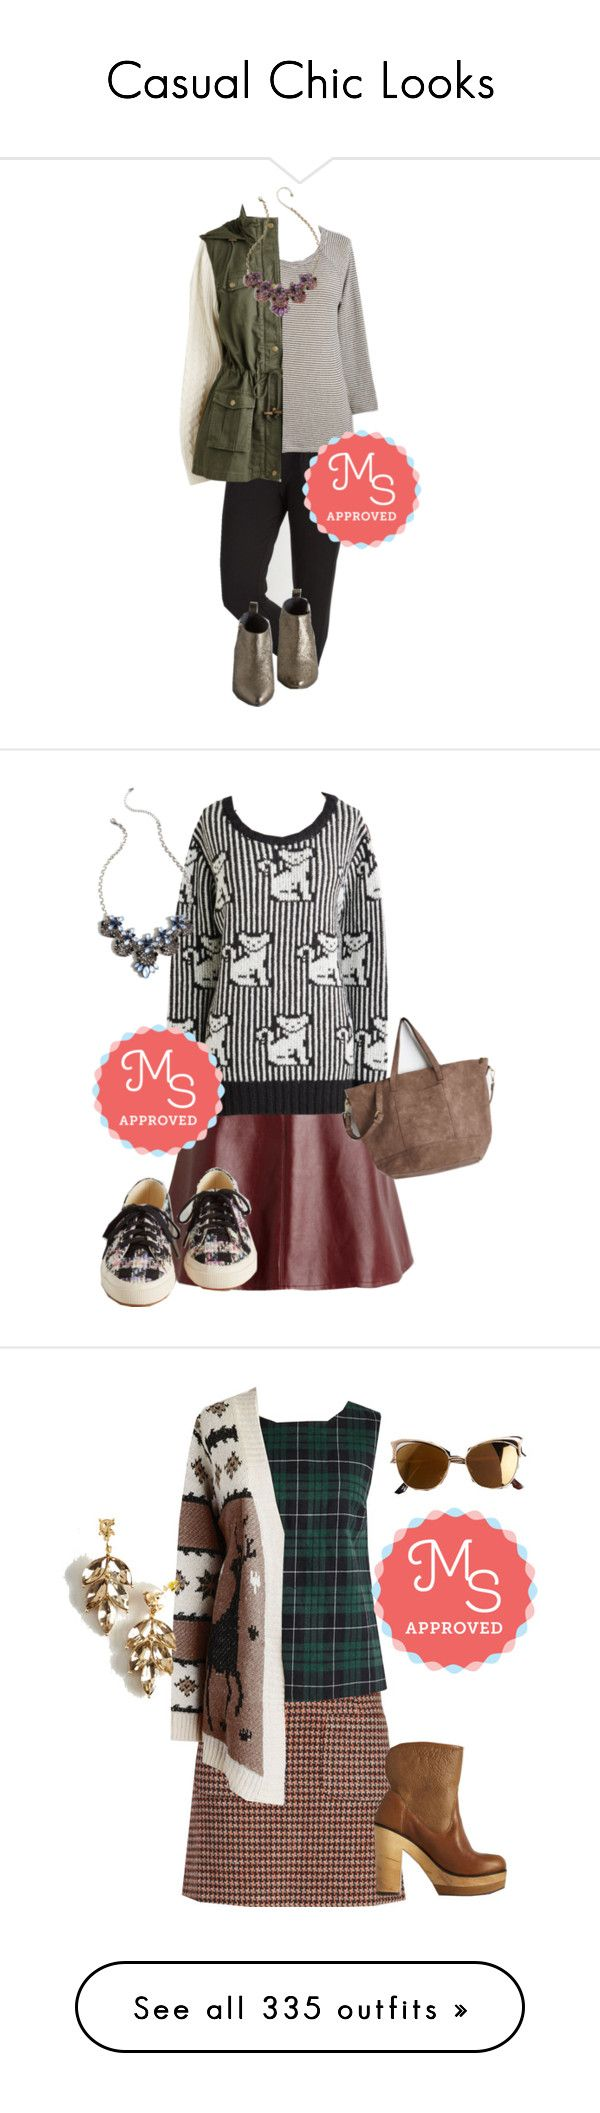 """Casual Chic Looks"" by modcloth ❤ liked on Polyvore featuring moda, Seychelles, comfy, modcloth, modstylist, Hostess, outfit, KLING, Quay y Fall"